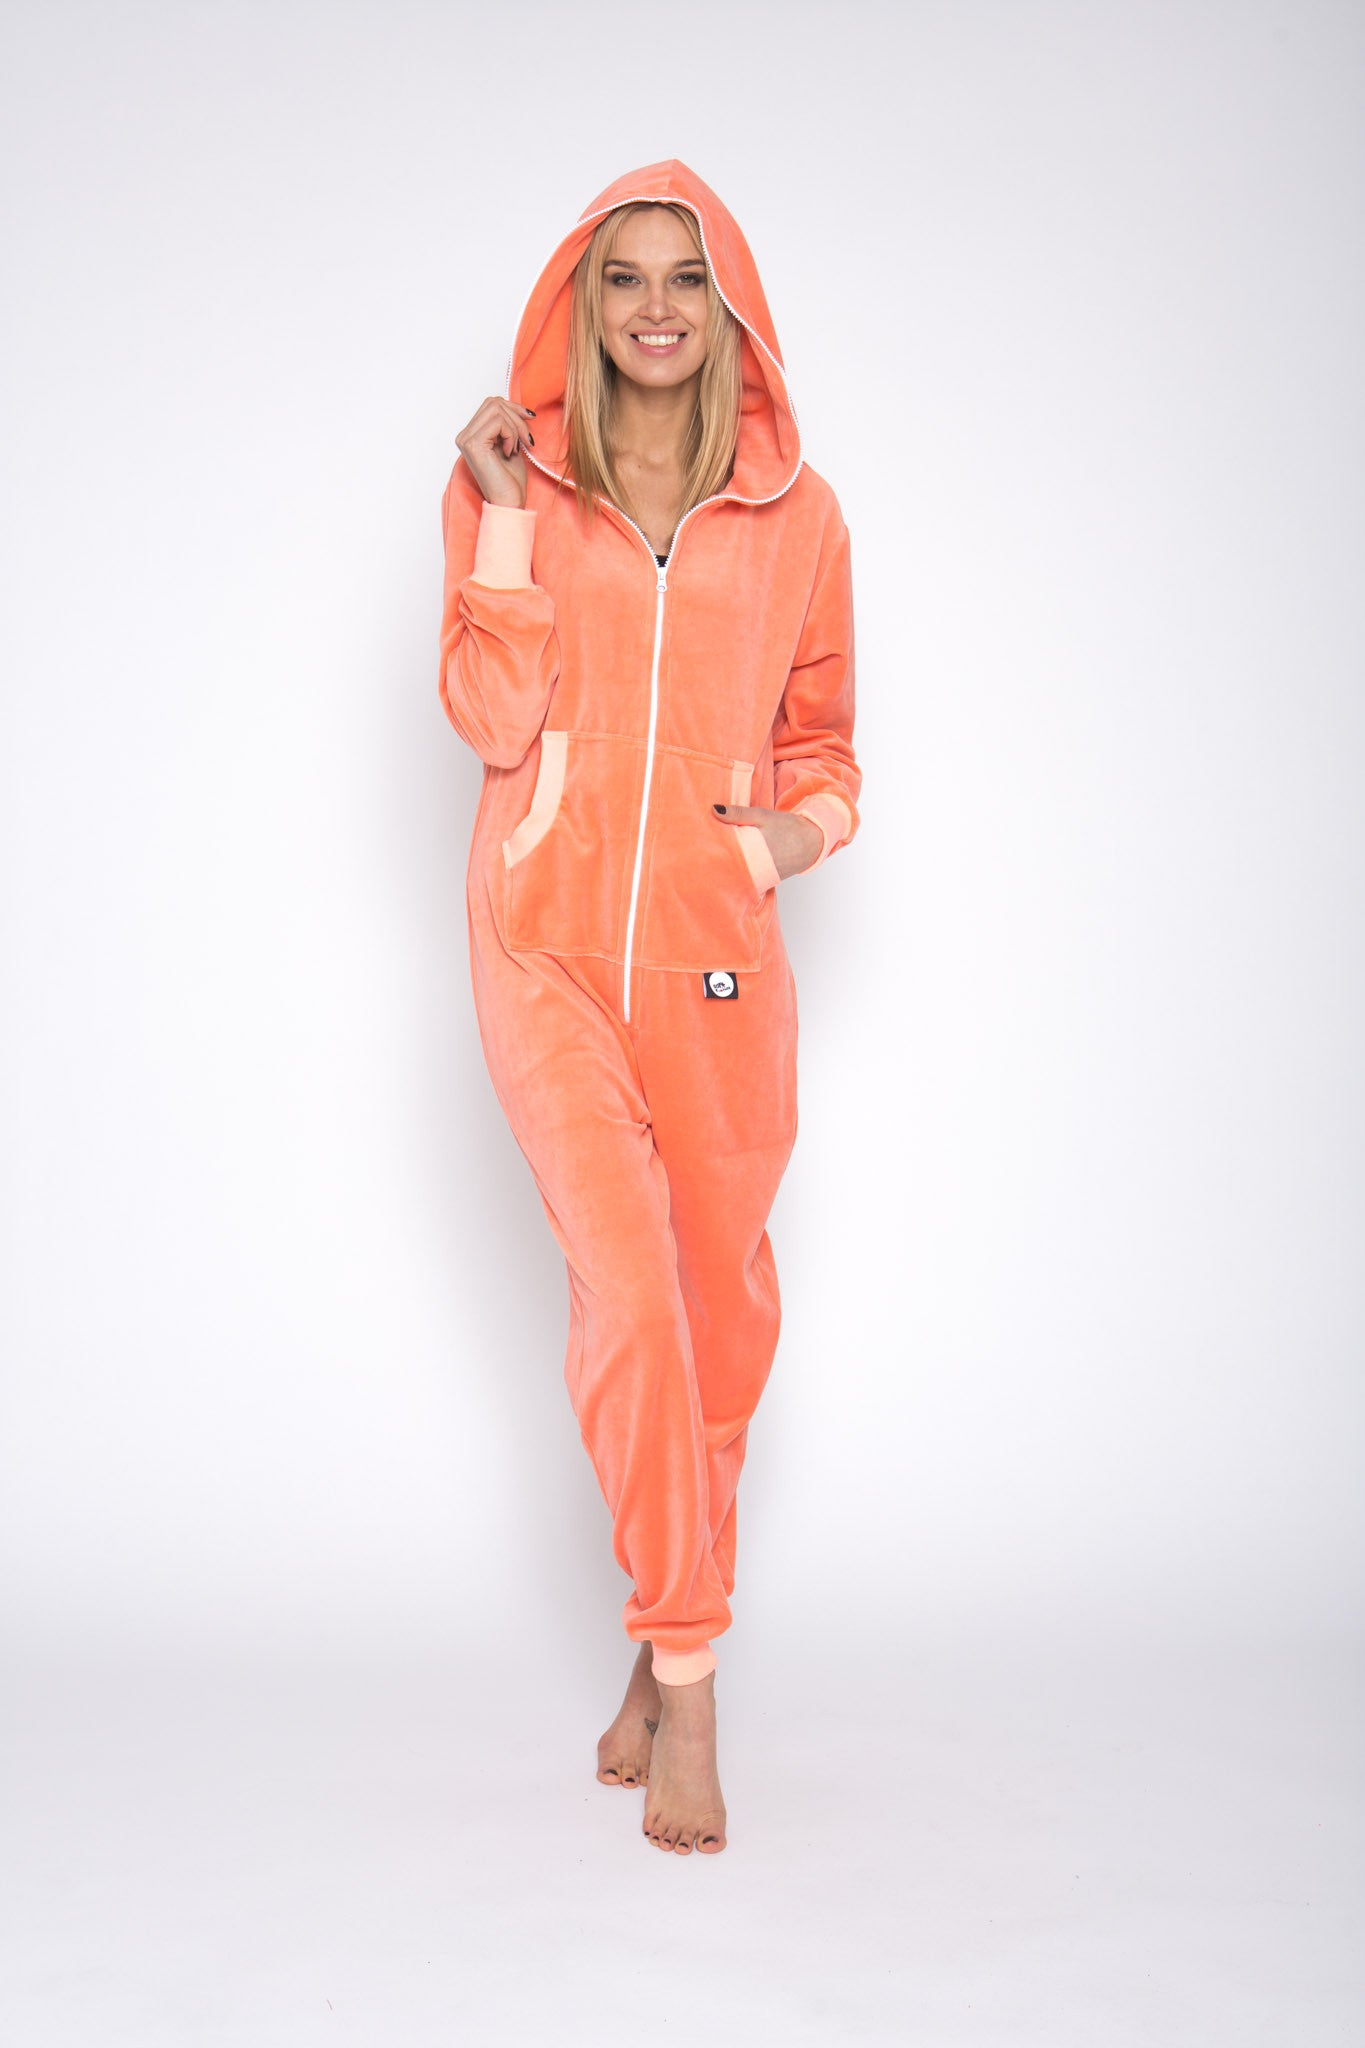 sofa killer velours women onesie